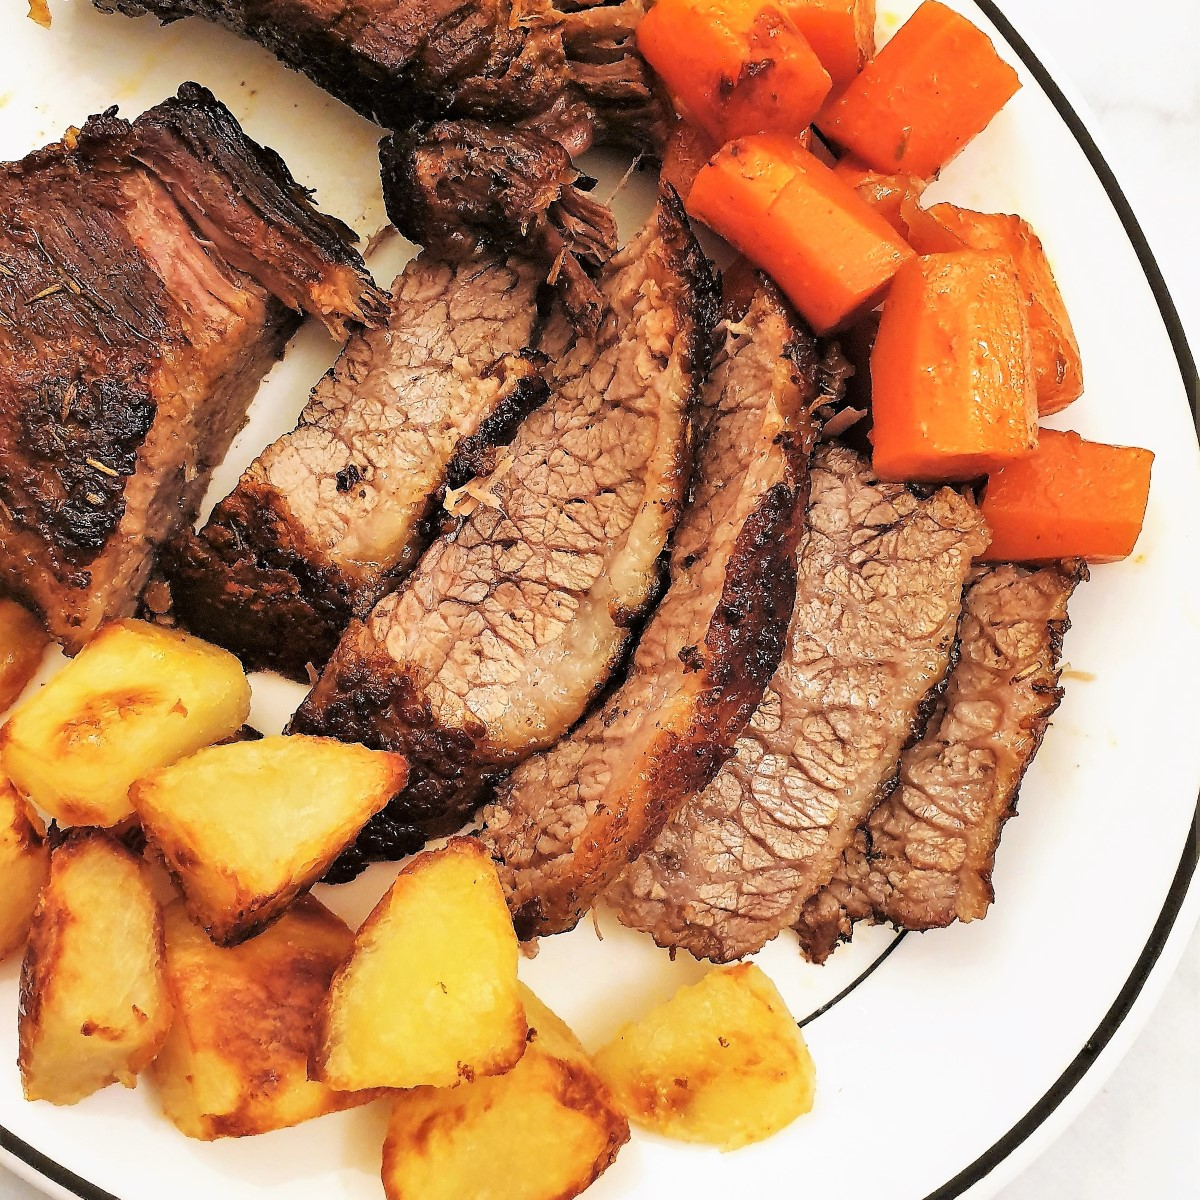 Slices of brisket on a plate with carrots and roasted potatoes.